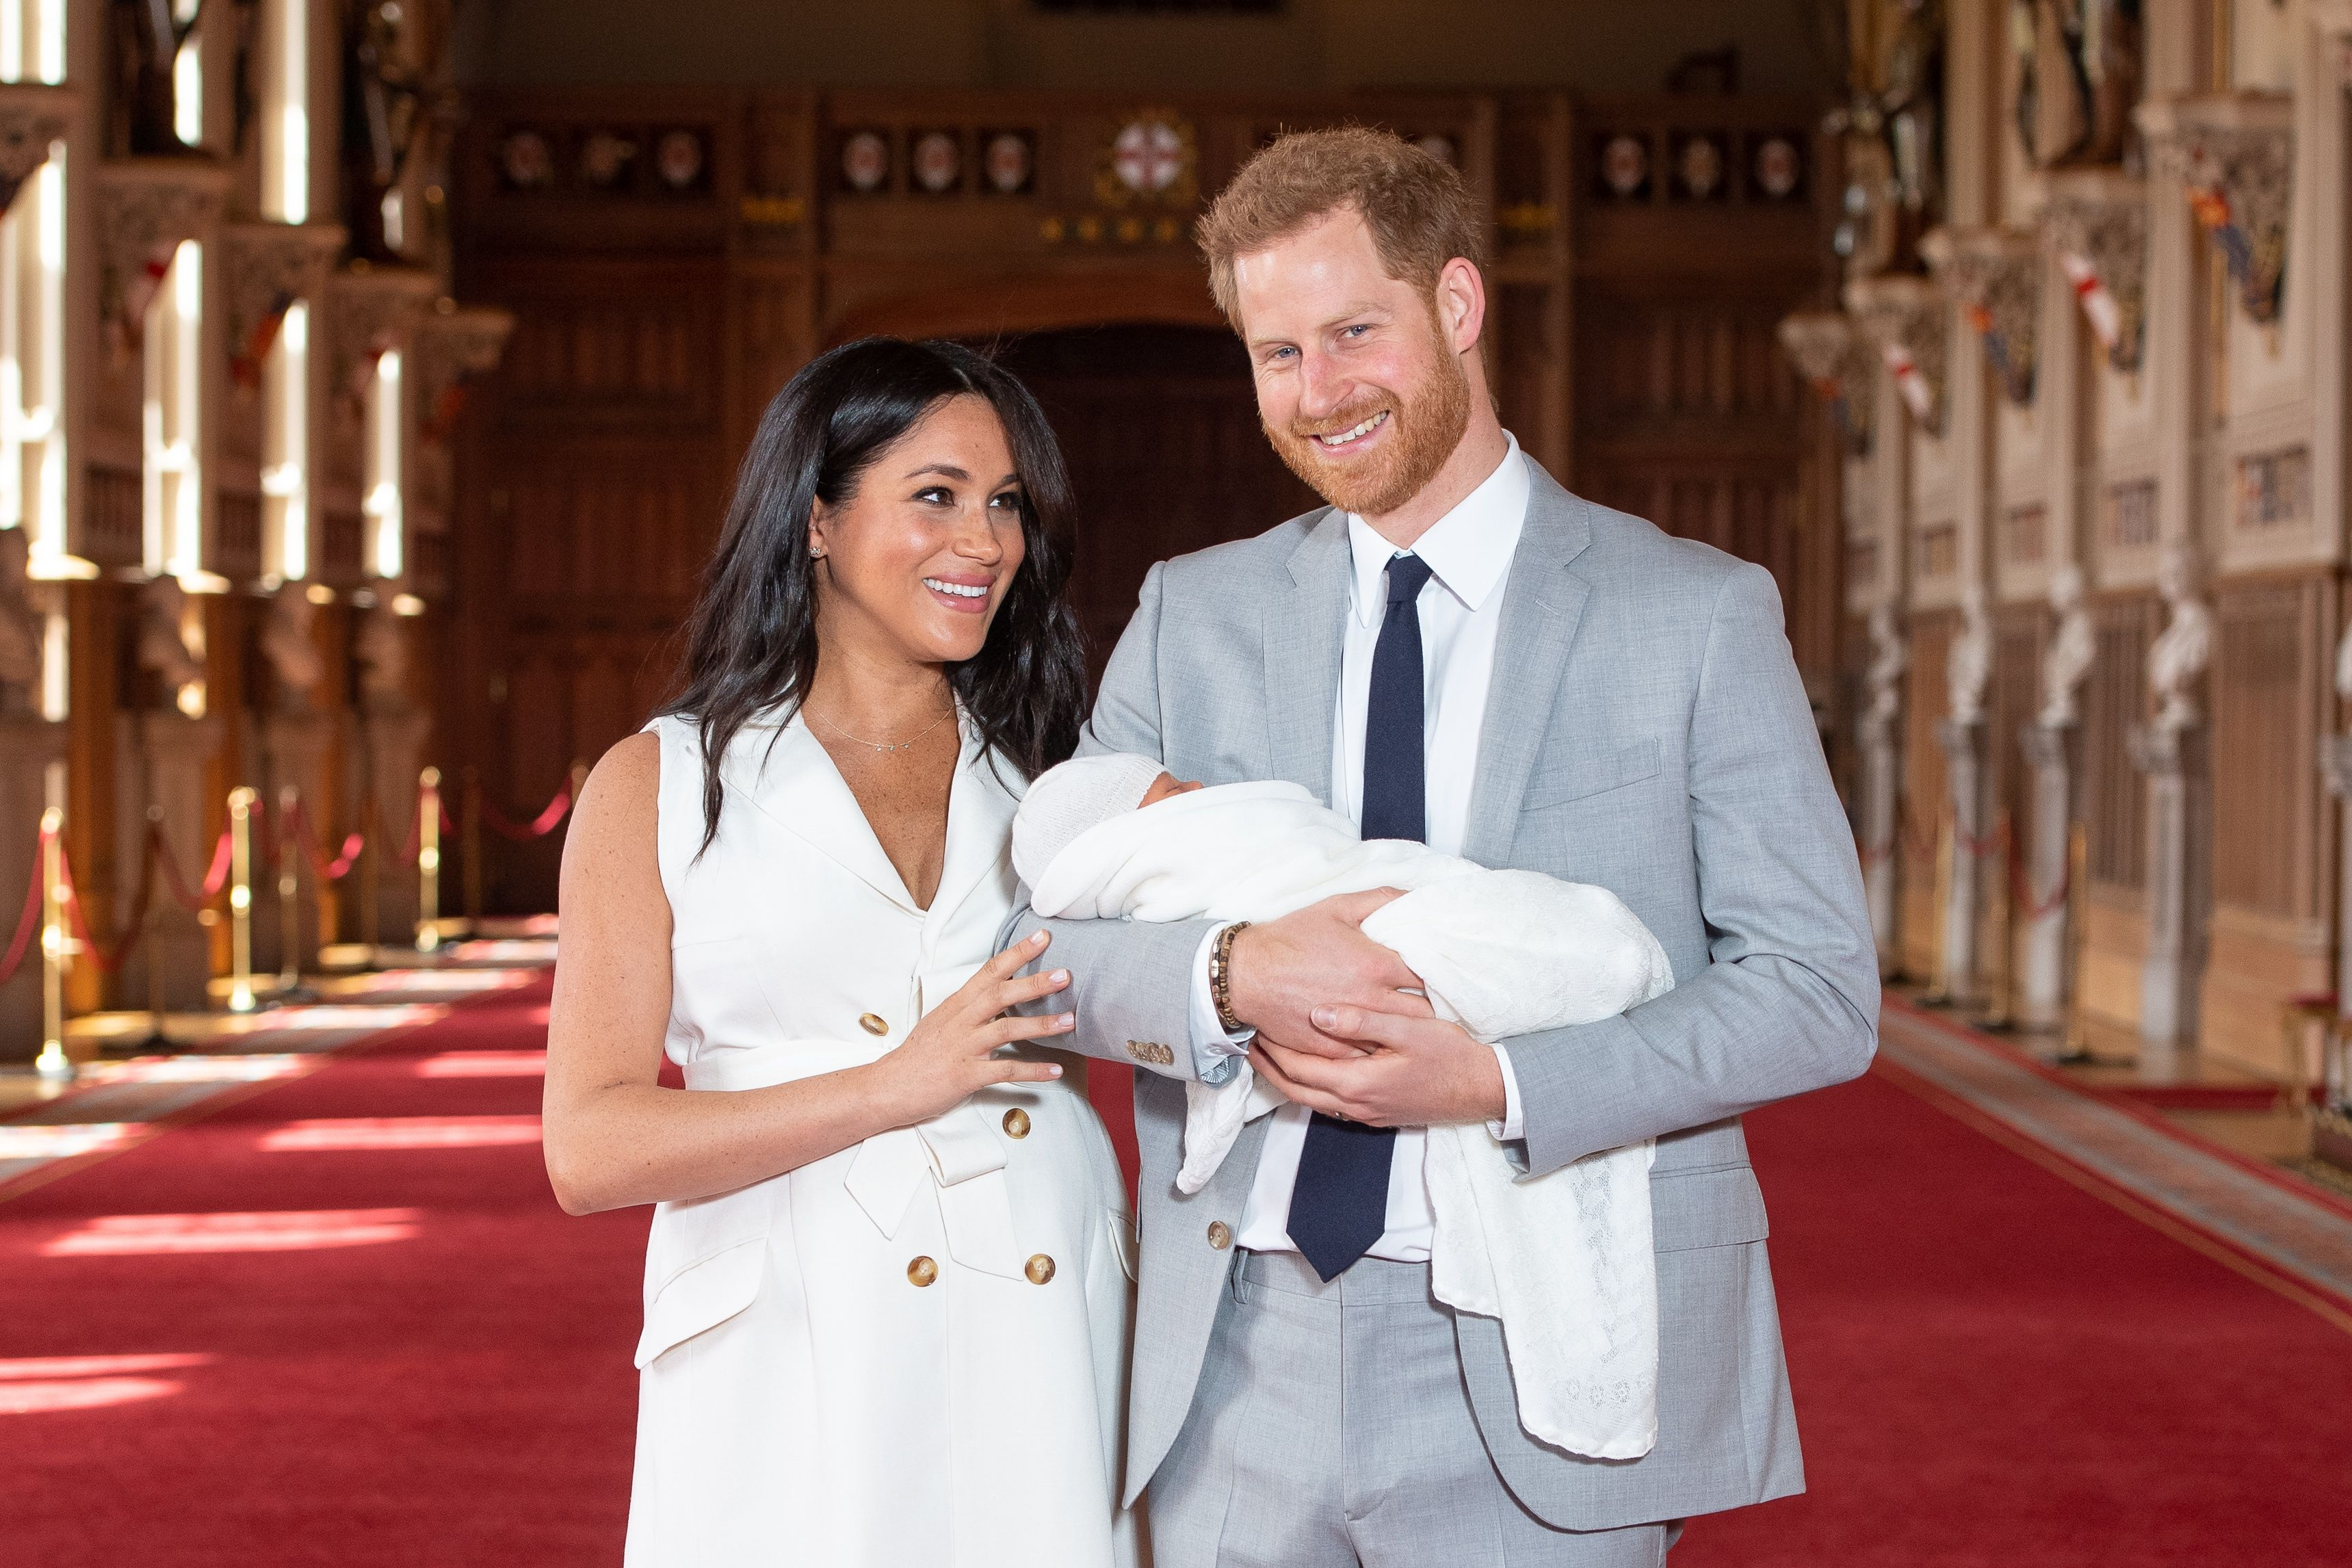 Prince Harry and Meghan Markle Share a Sweet New Photo of Archie (and His Face!) for Father's Day